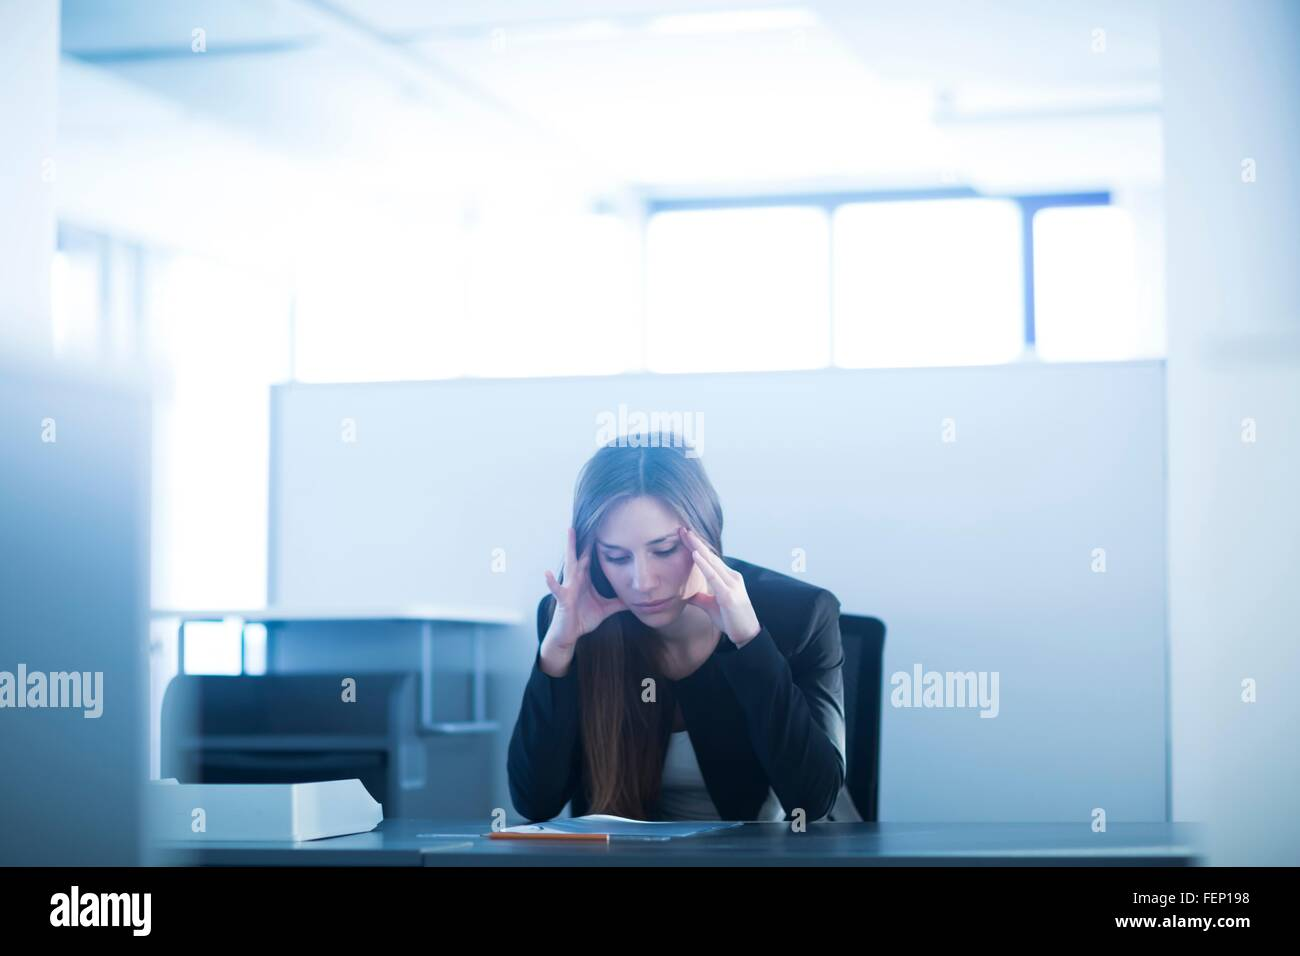 Young woman sitting at desk in office, head in hands looking down, stressed - Stock Image